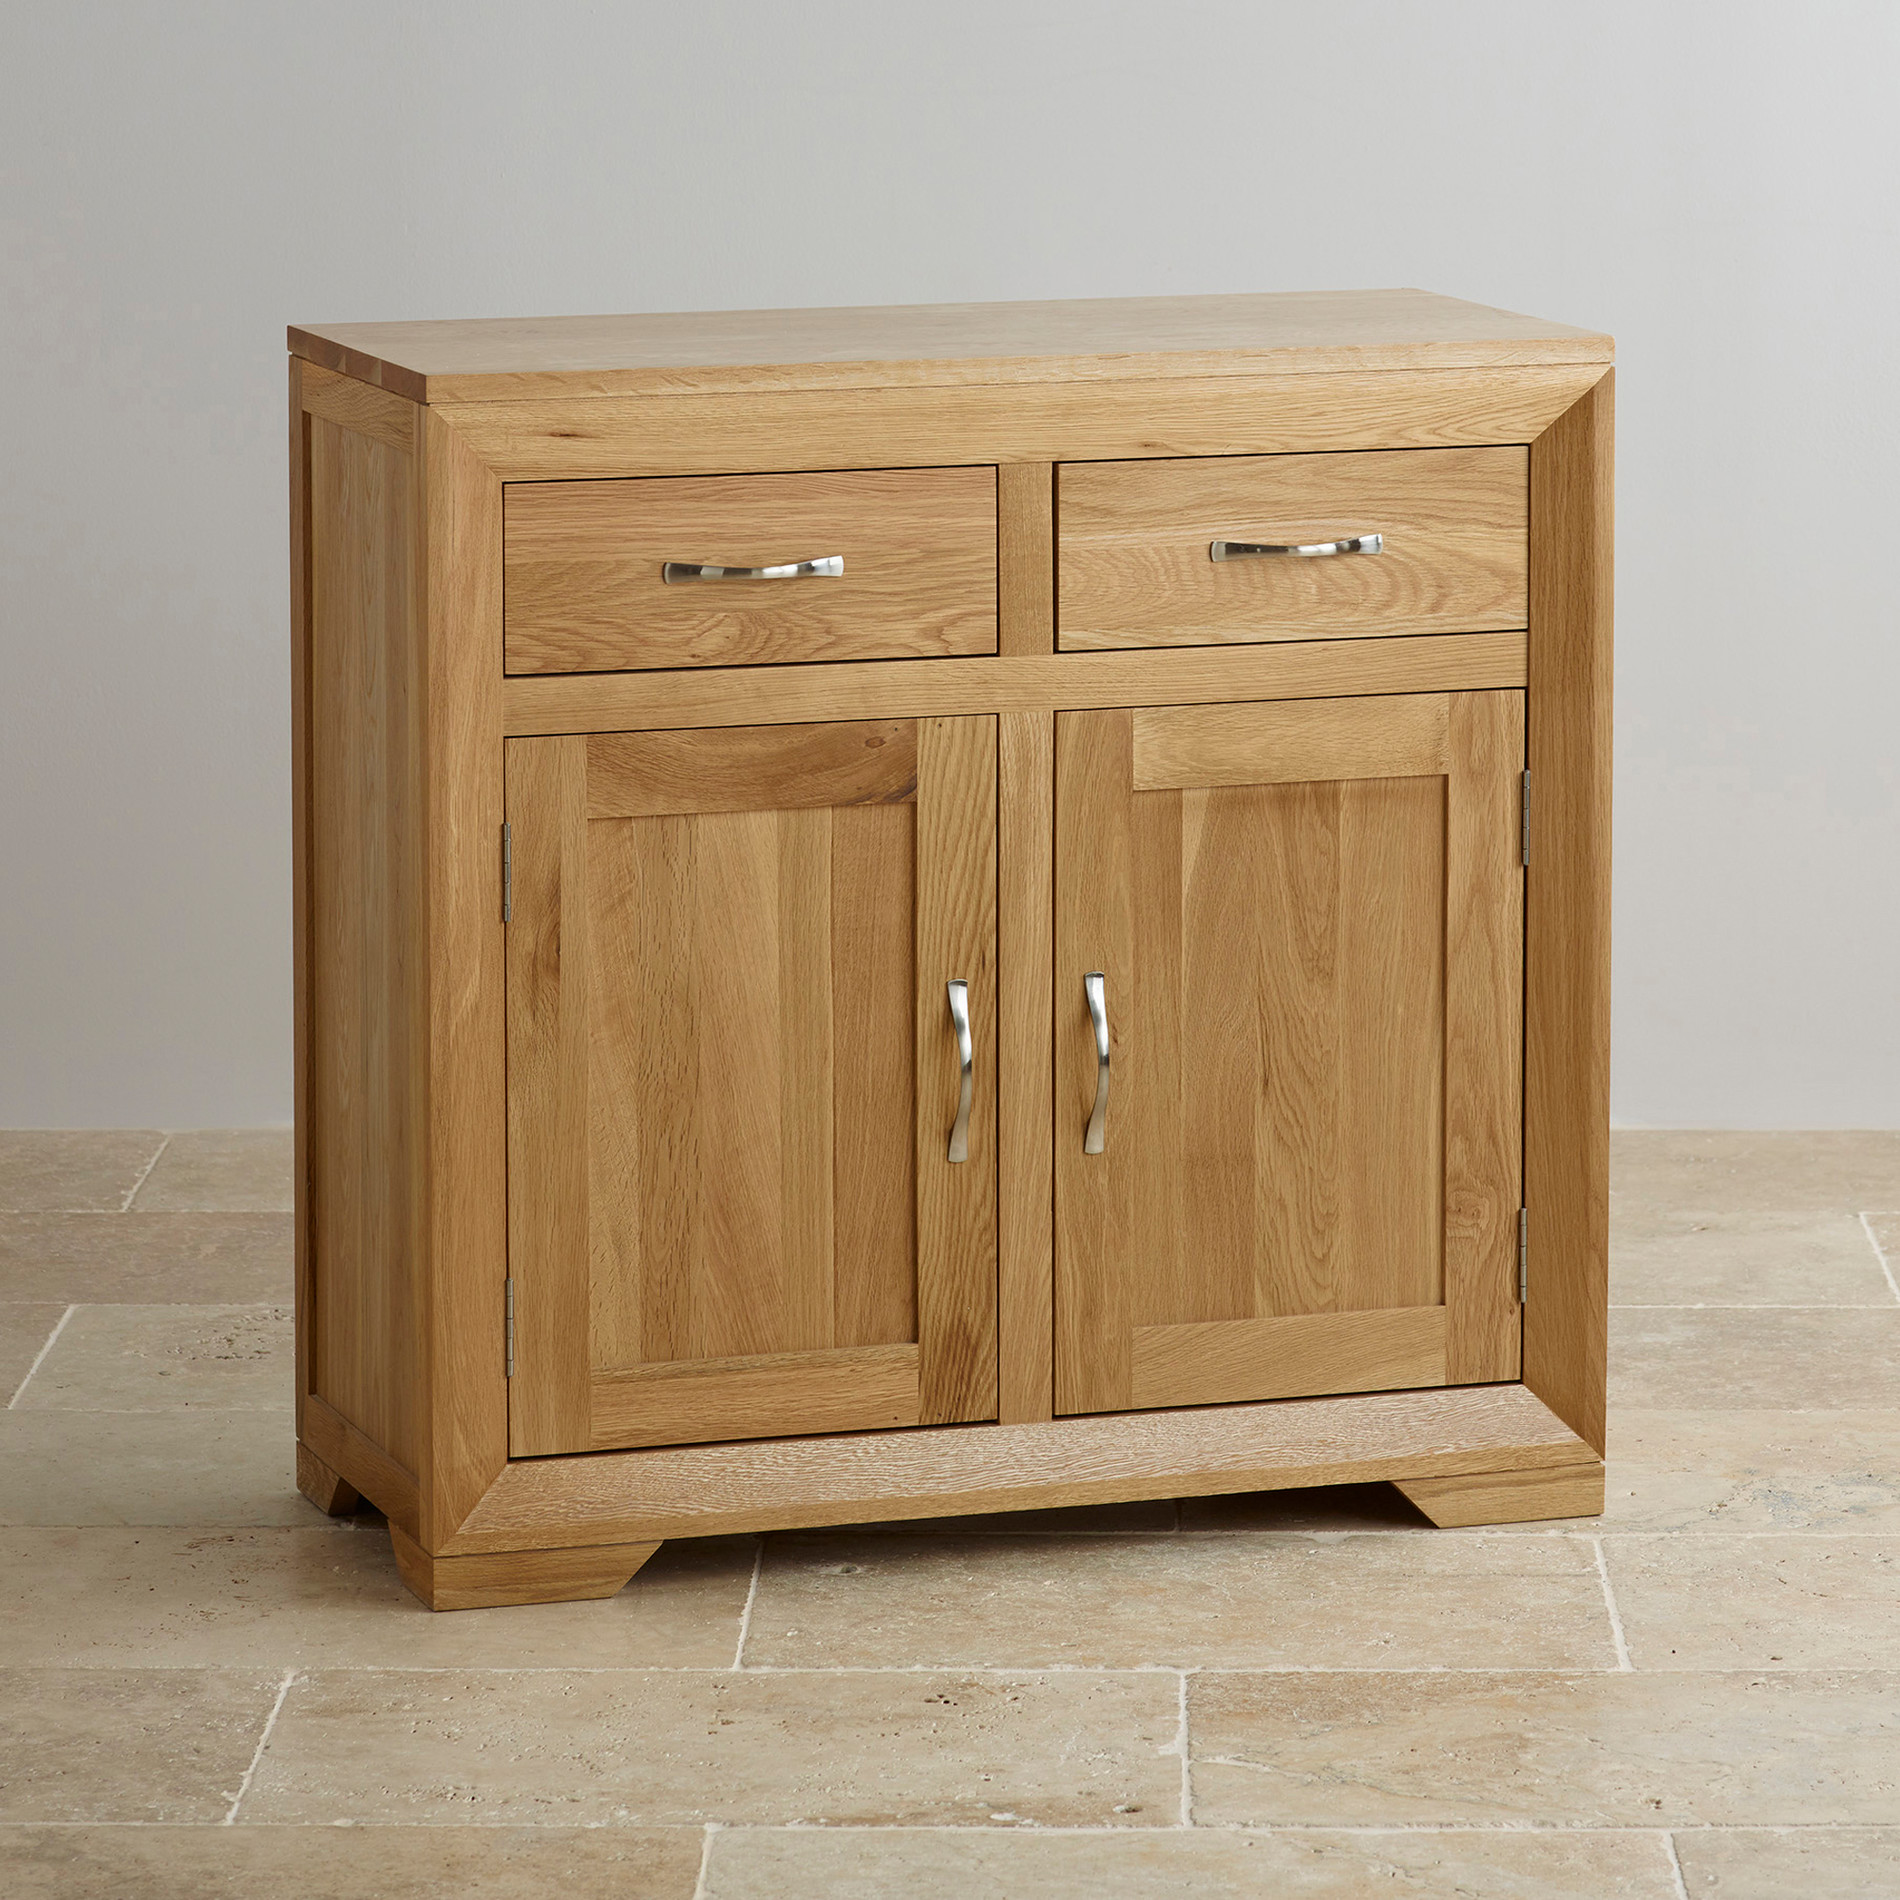 Bevel small sideboard in natural solid oak oak furniture for Small furniture